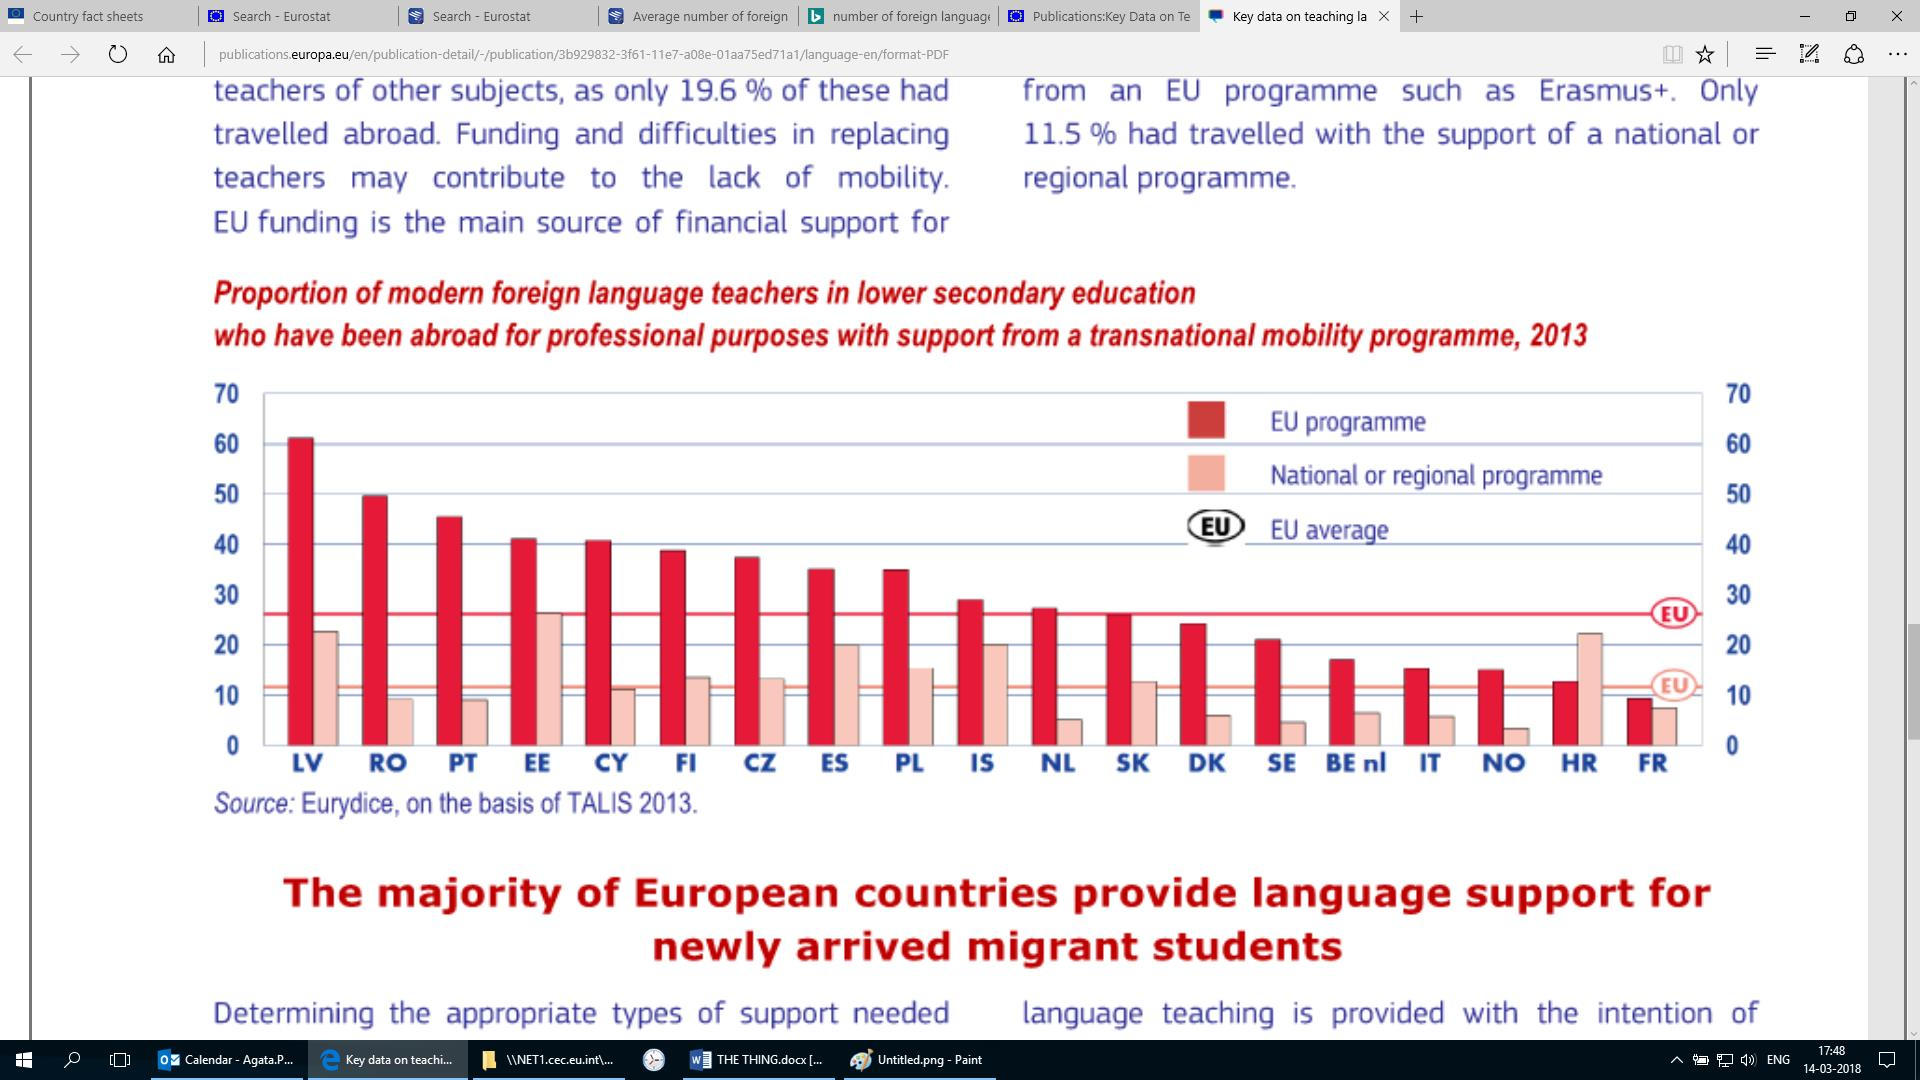 Eur Lex 52018sc0174 En Electrical Symbols Circuit For Kids Dk Find Out Figure 7 Proportion Of Modern Foreign Language Teachers In Lower Secondary Education Who Have Been Abroad Professional Purposes With Support From A